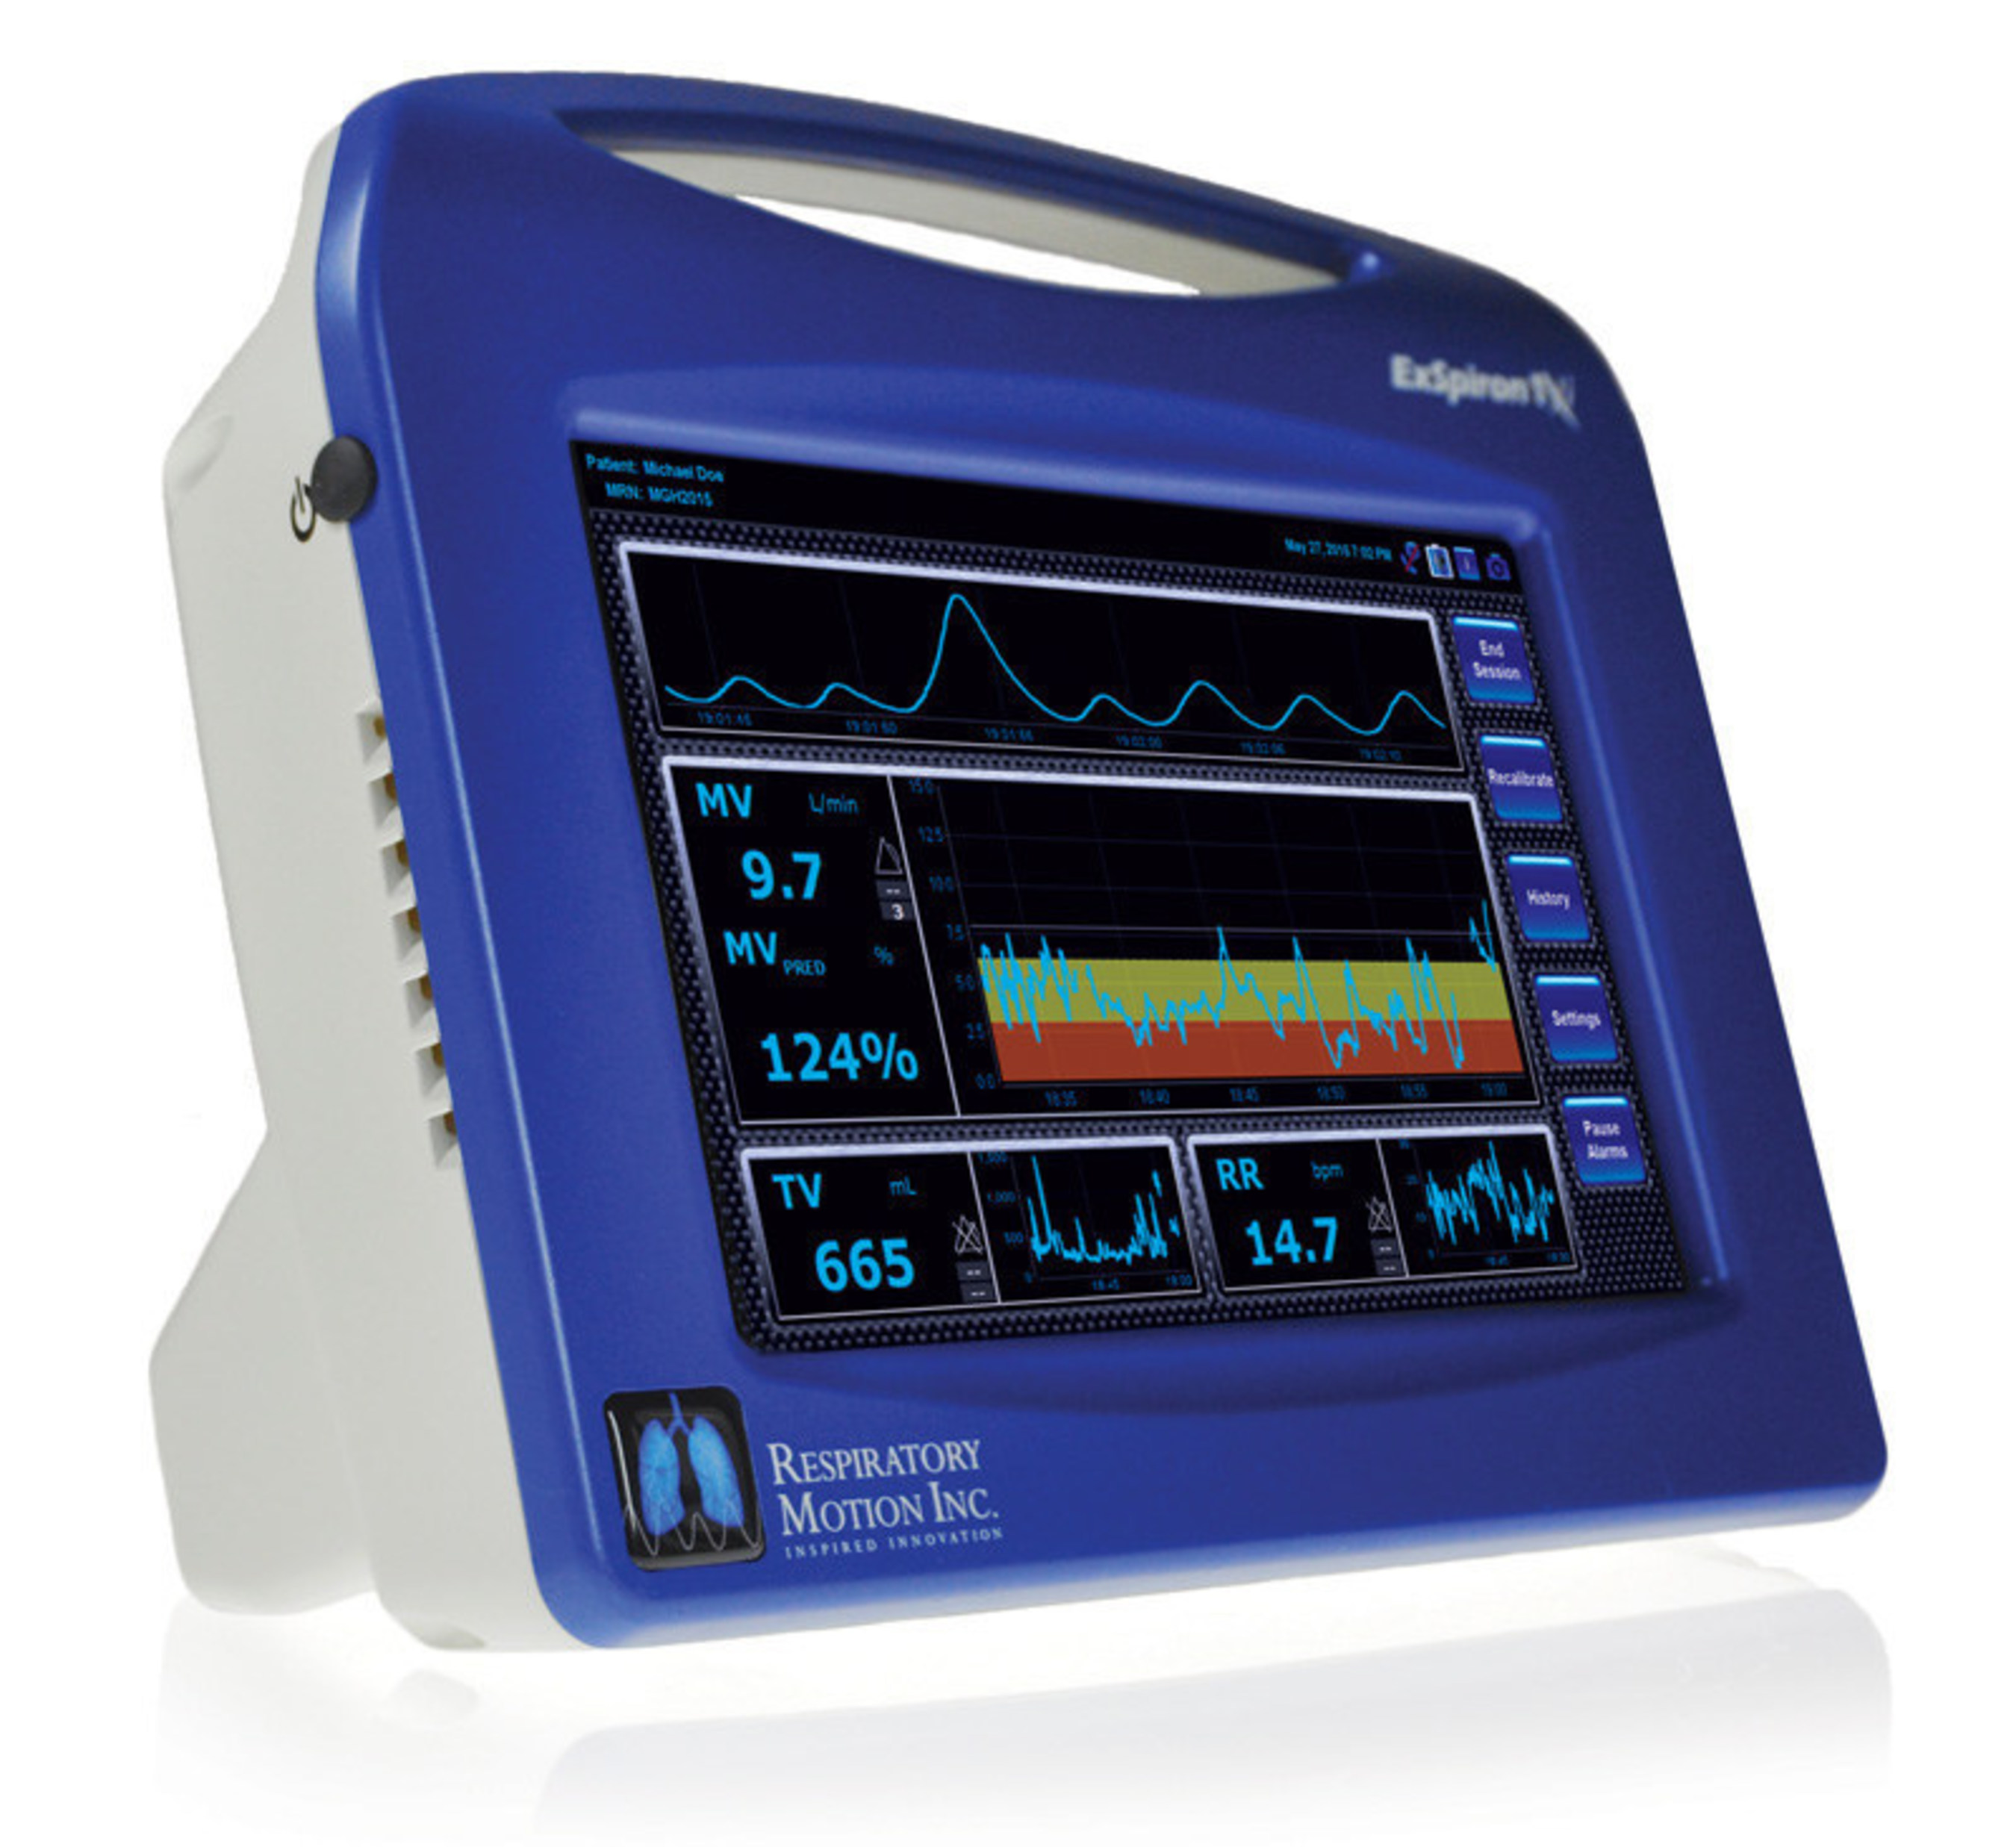 Respiratory Motion tackles the biggest respiratory challenges by Monitoring Minute Ventilation at AACN NTI 2016